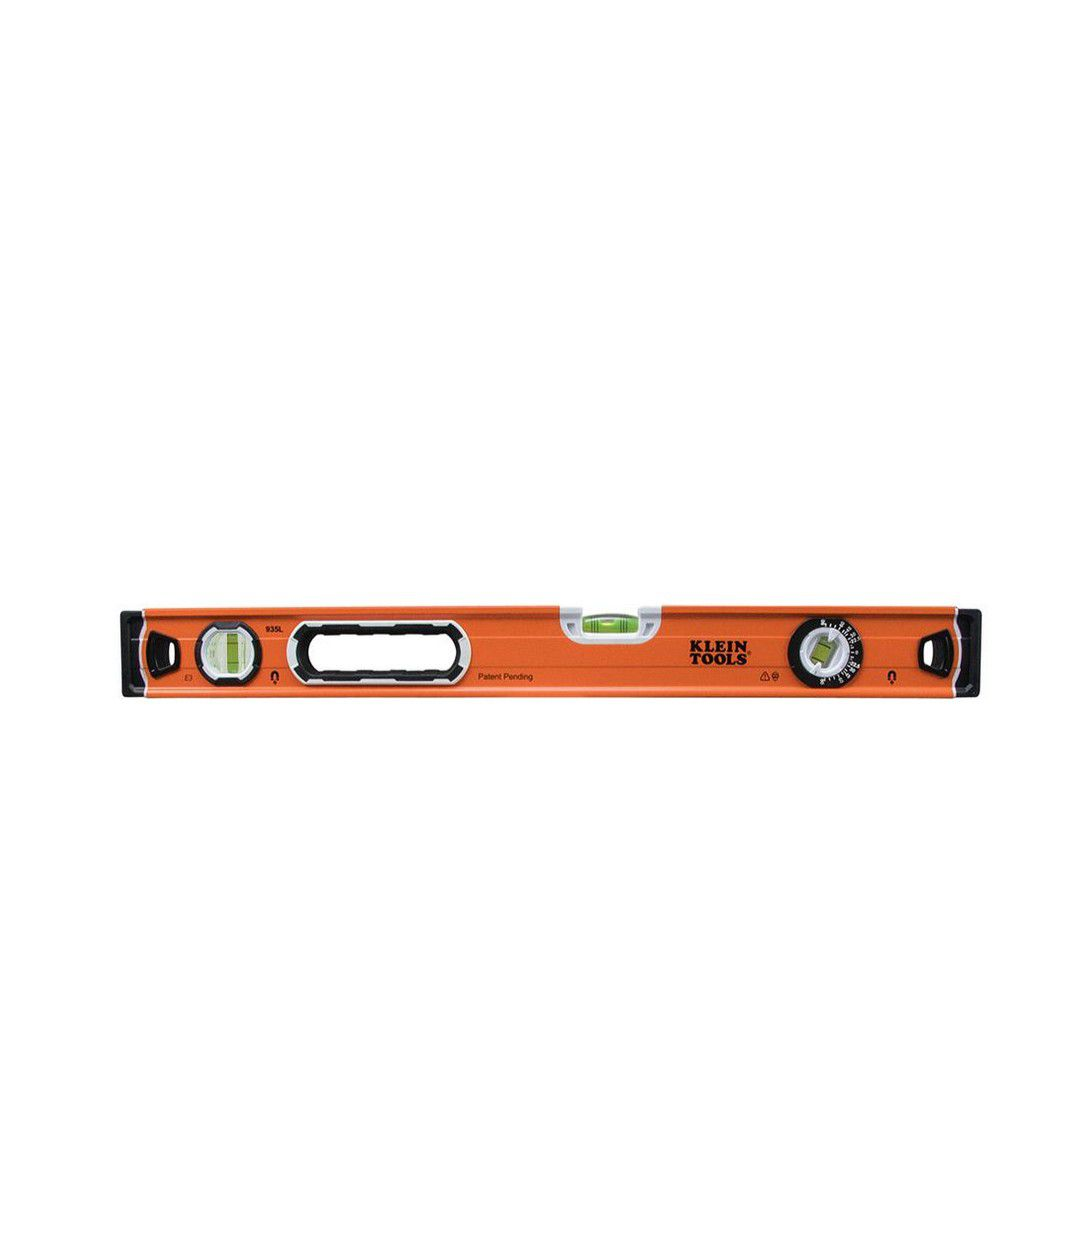 Kleintools 24 inches level brand new